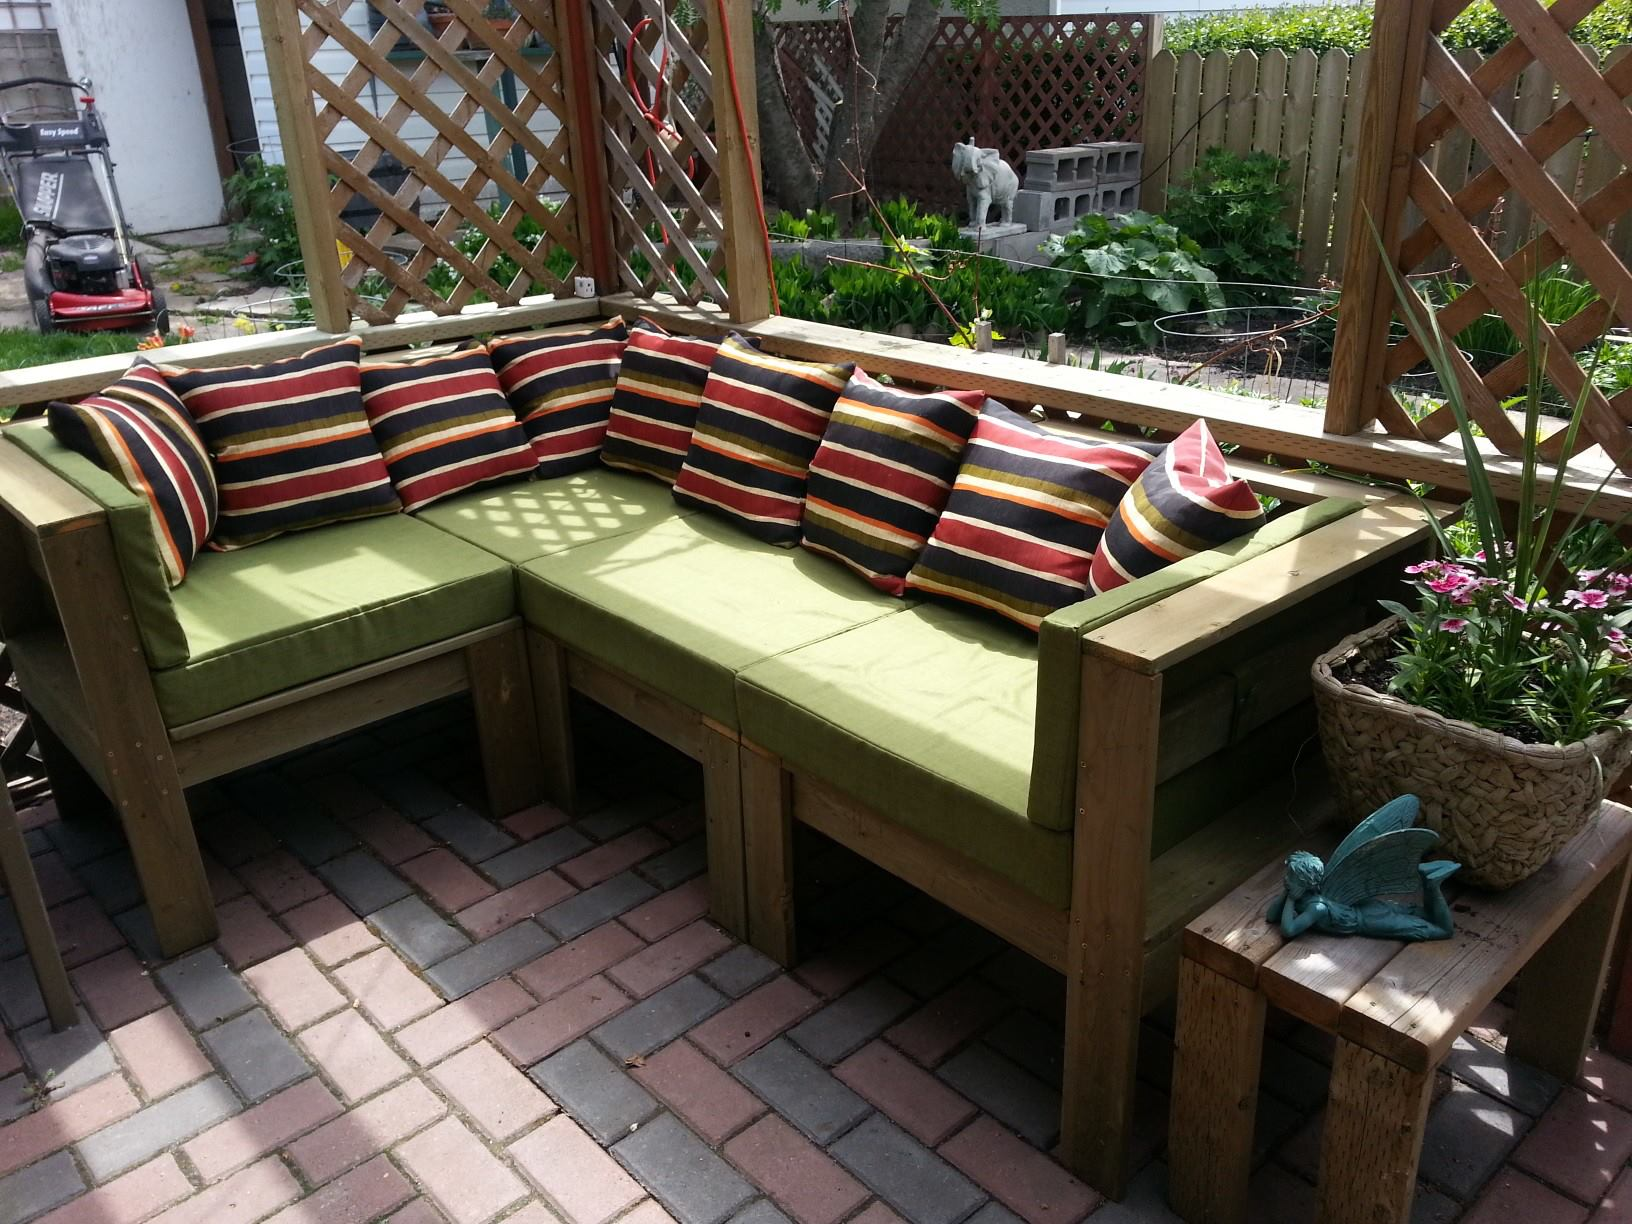 diy-garden-furniture-3